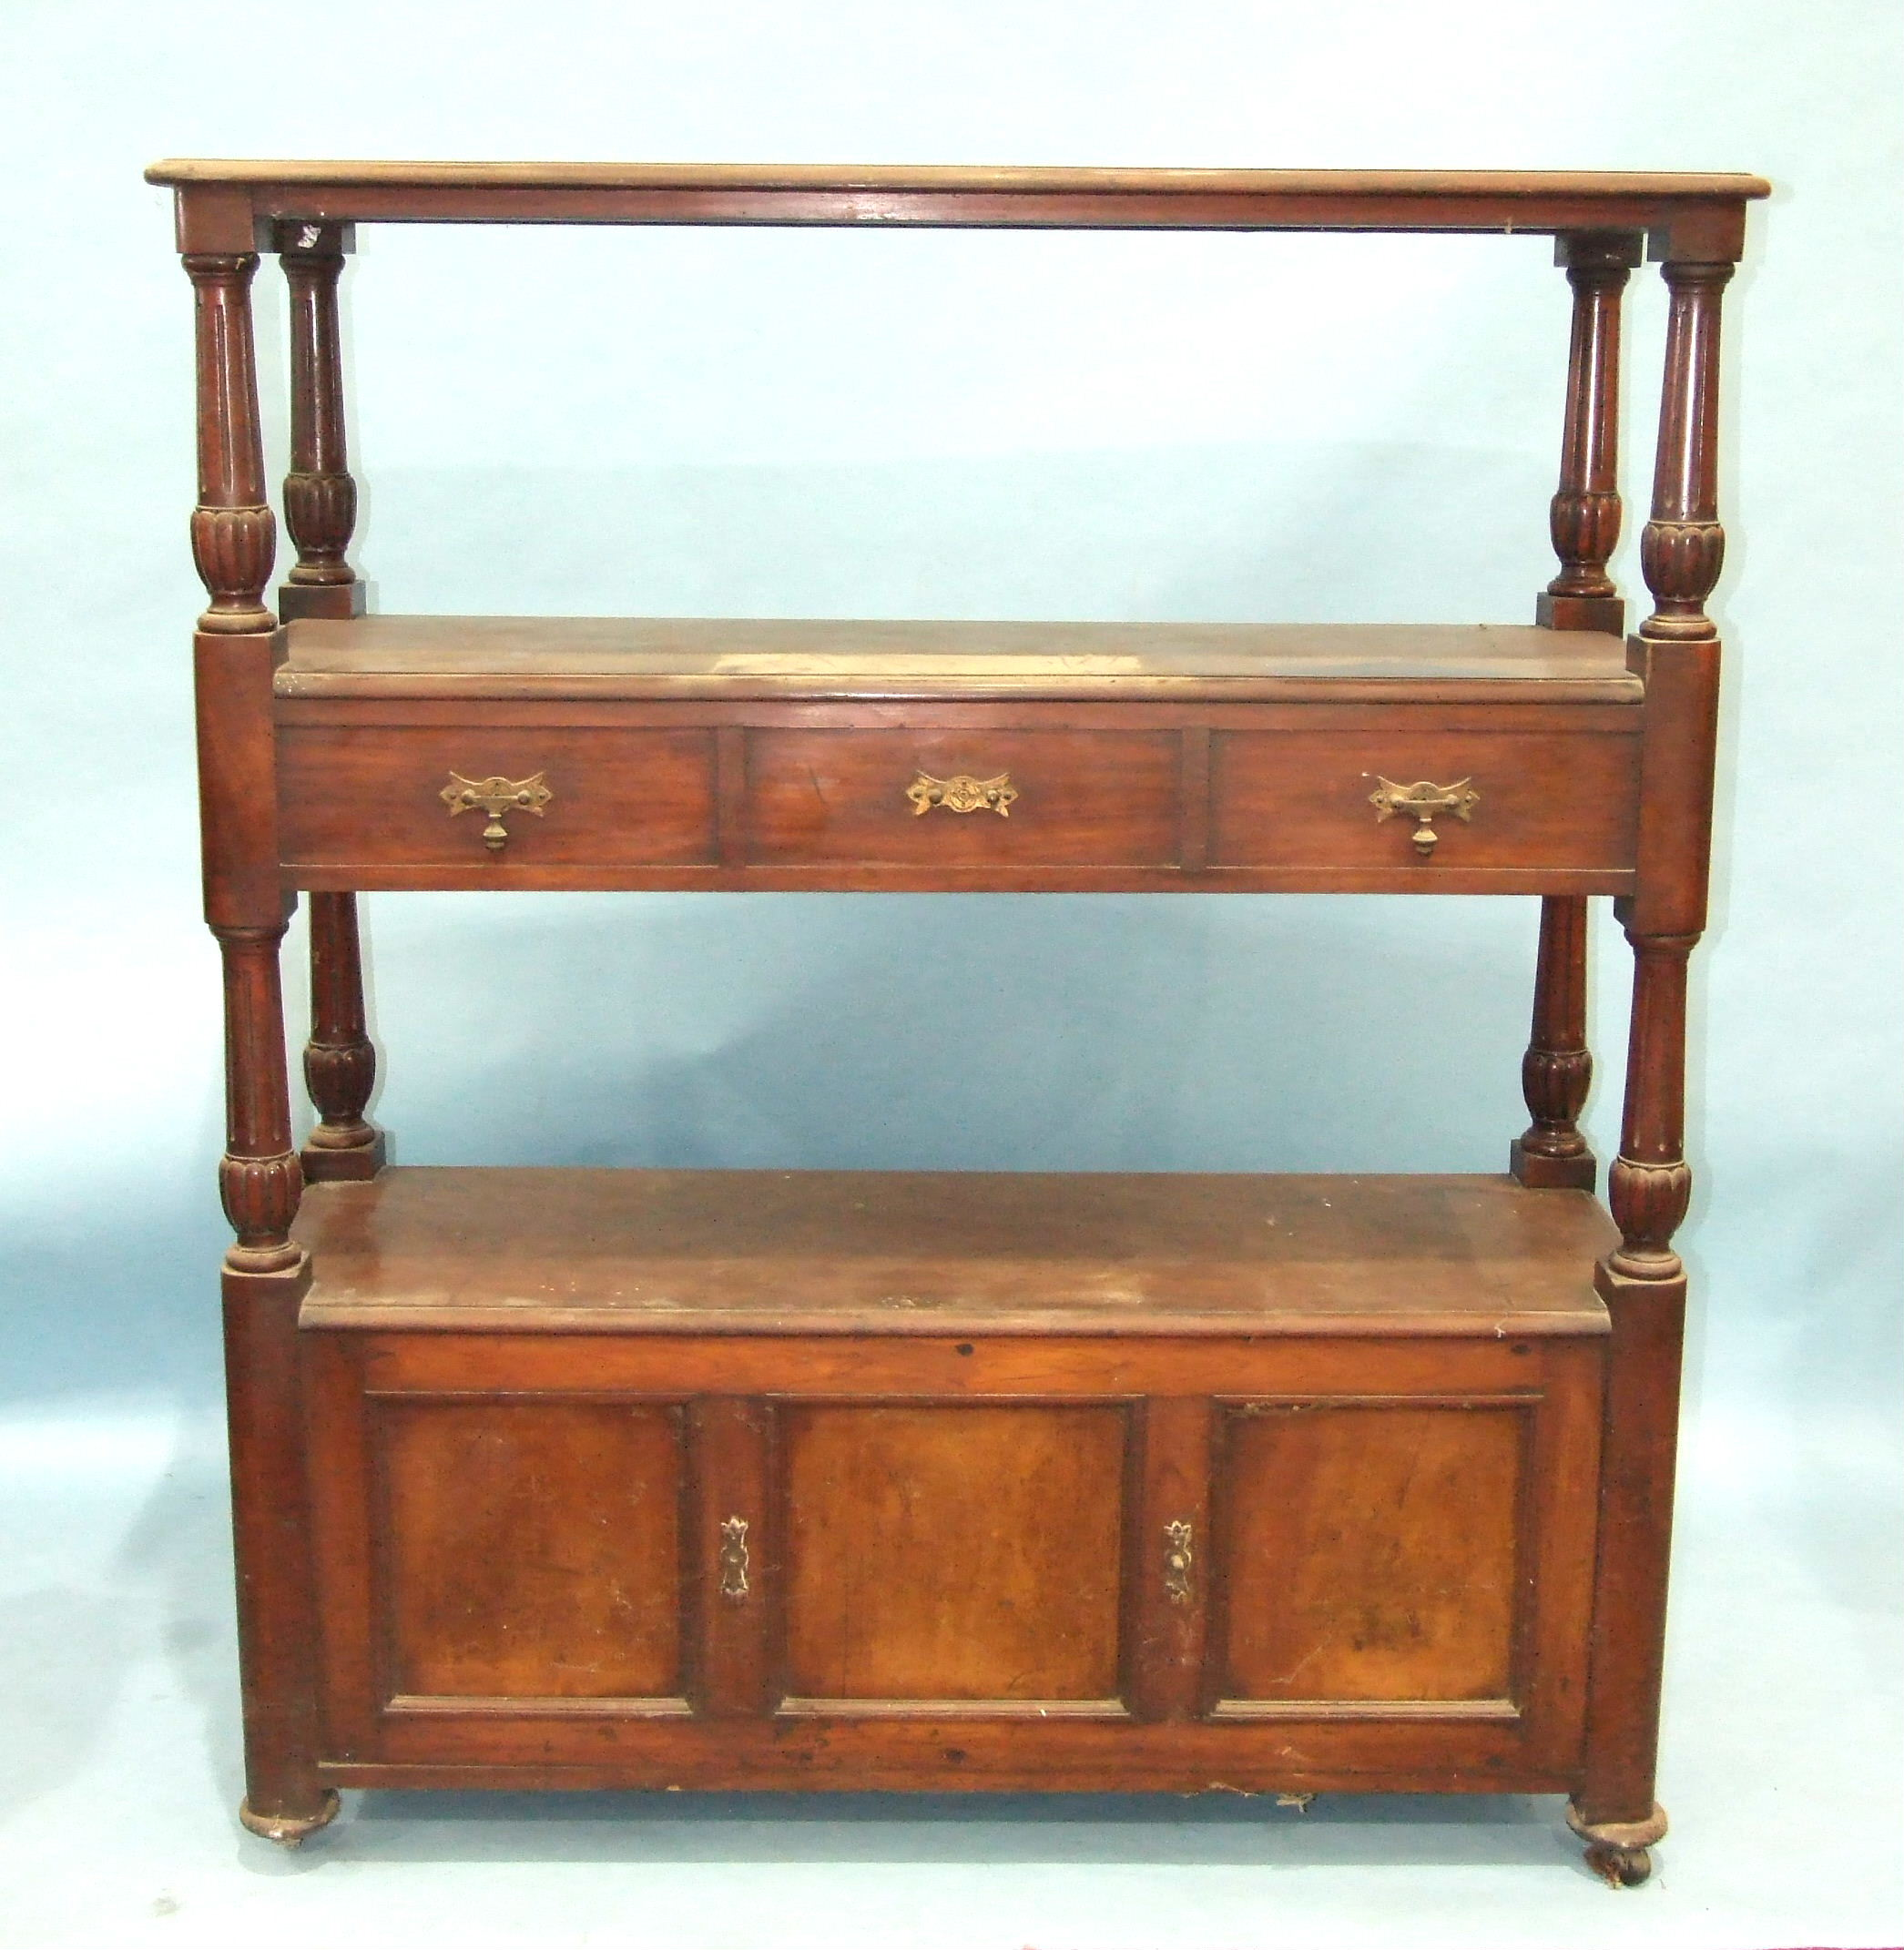 A Victorian double-sided three-tier dumb waiter, having two centre drawers and three base